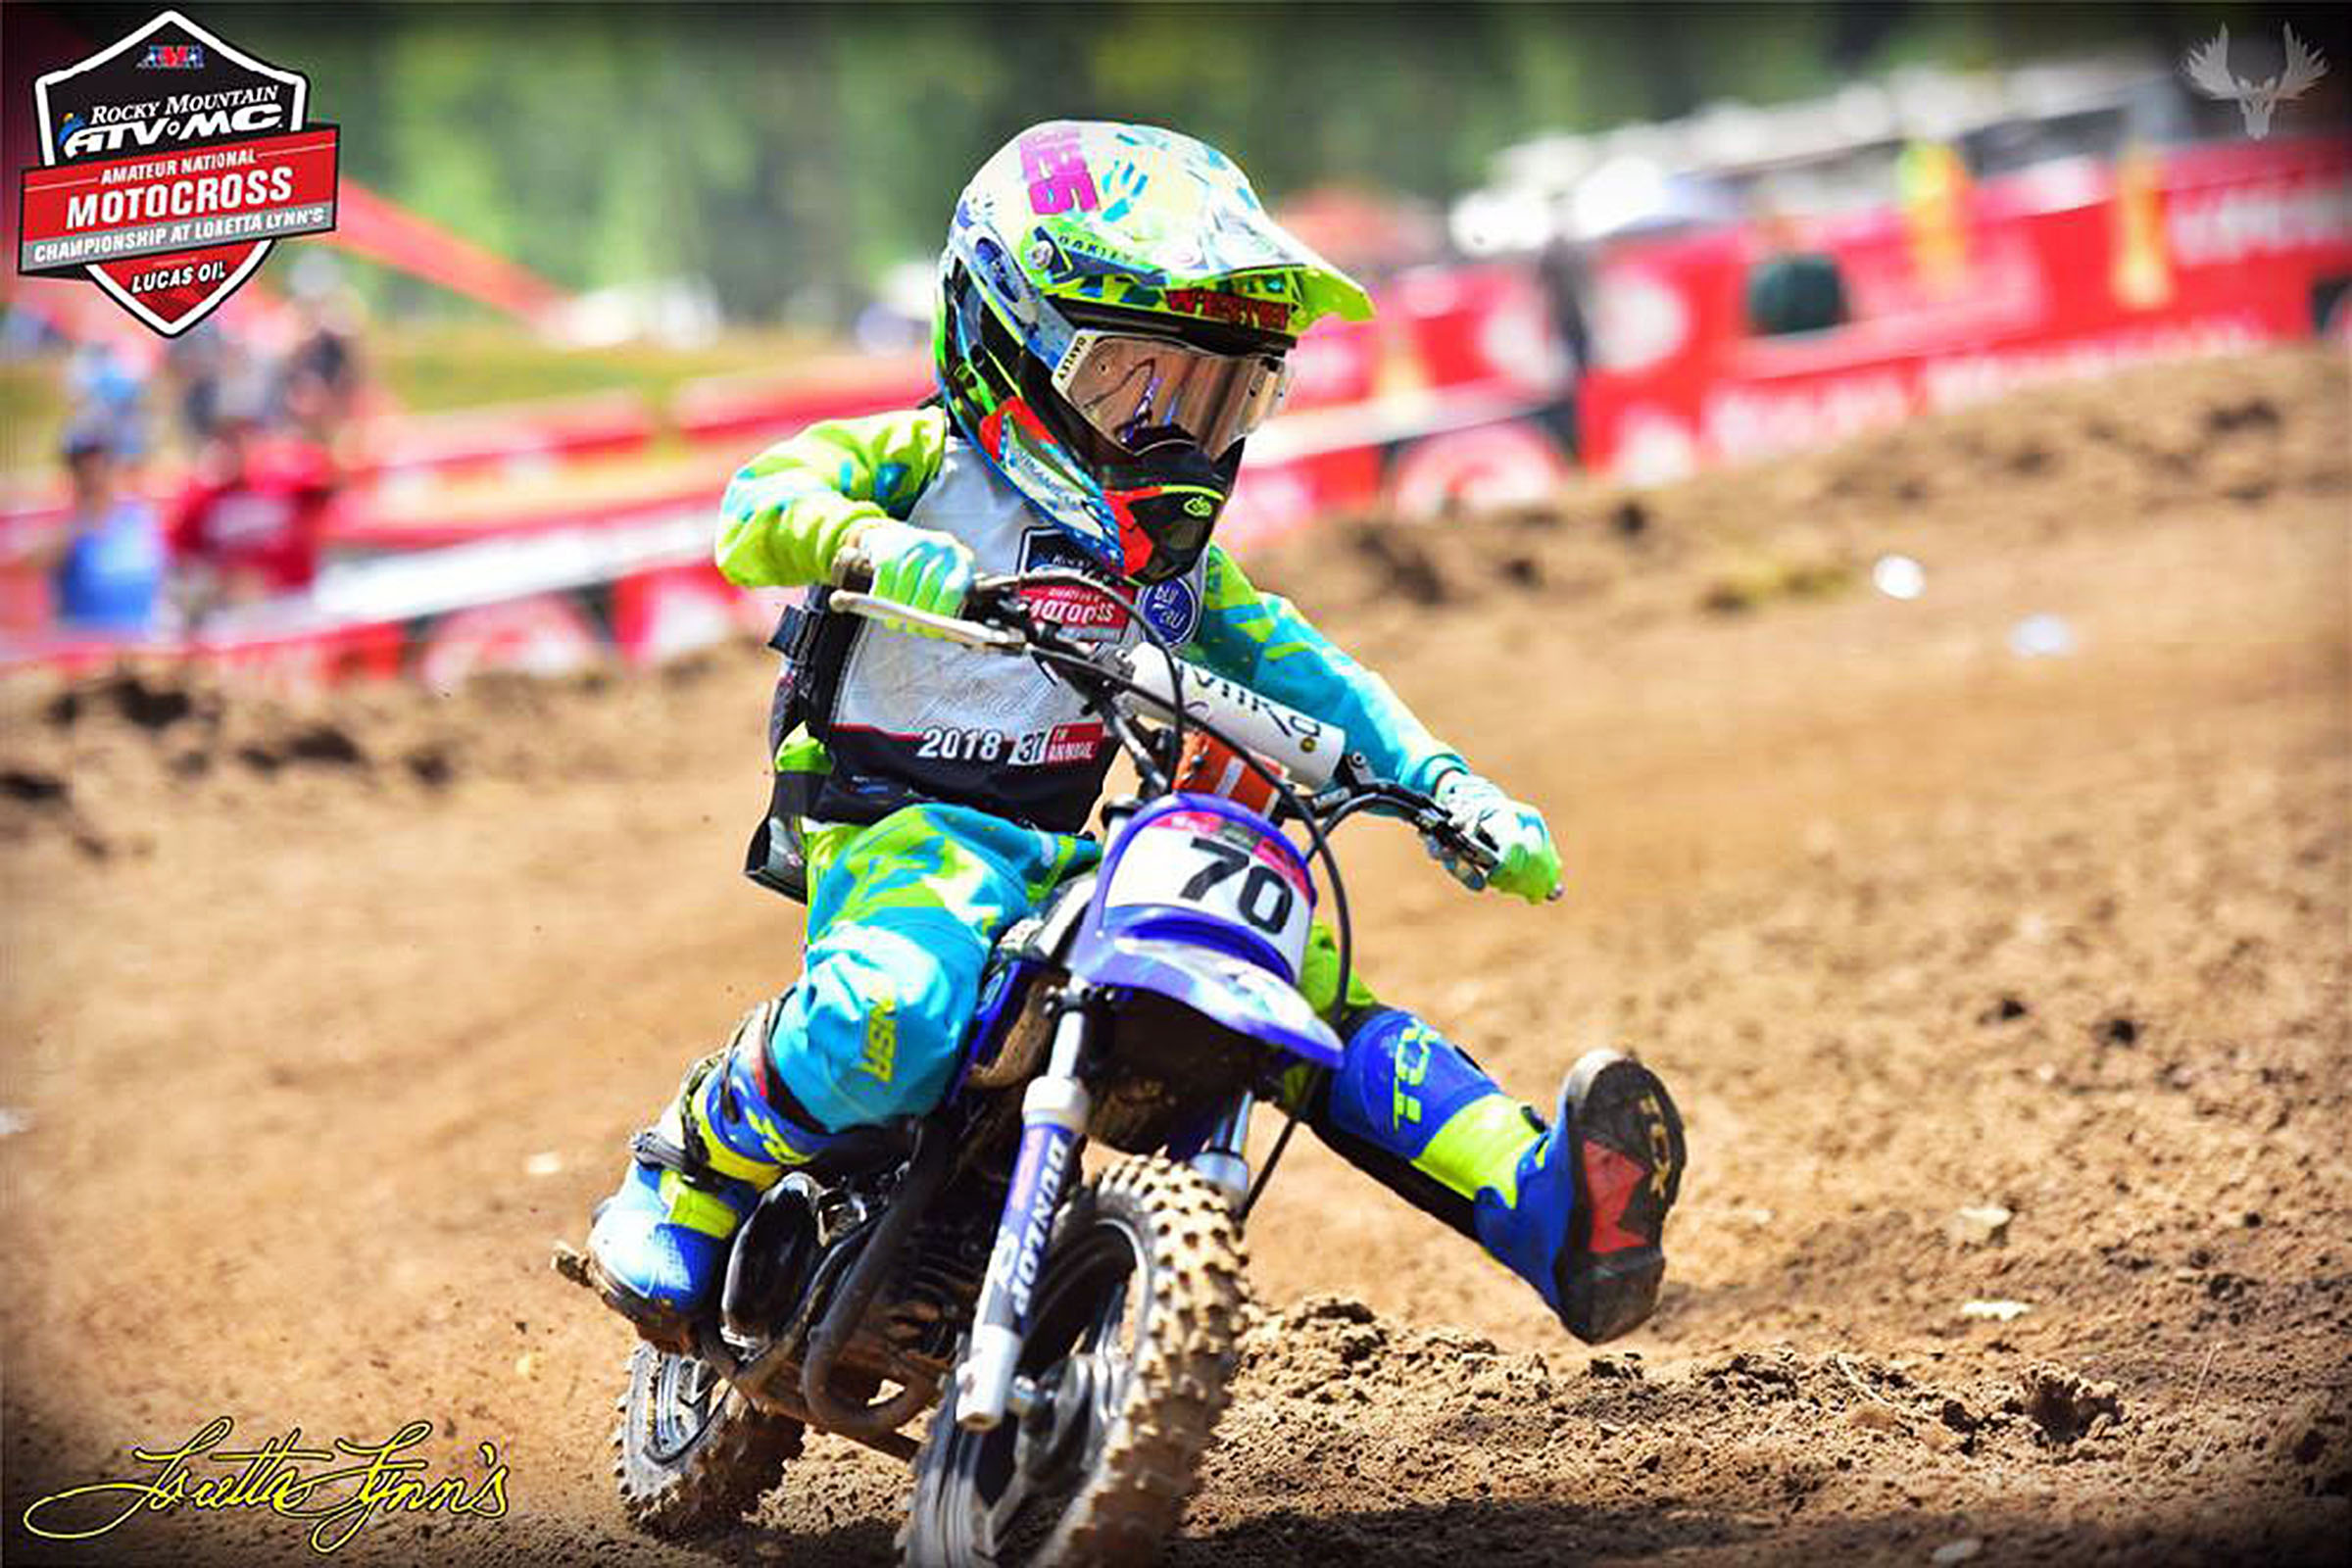 Motocross Garage Accessories The Motocross Kid 7 Year Old Arkansan Is Dirt Bike Champion In